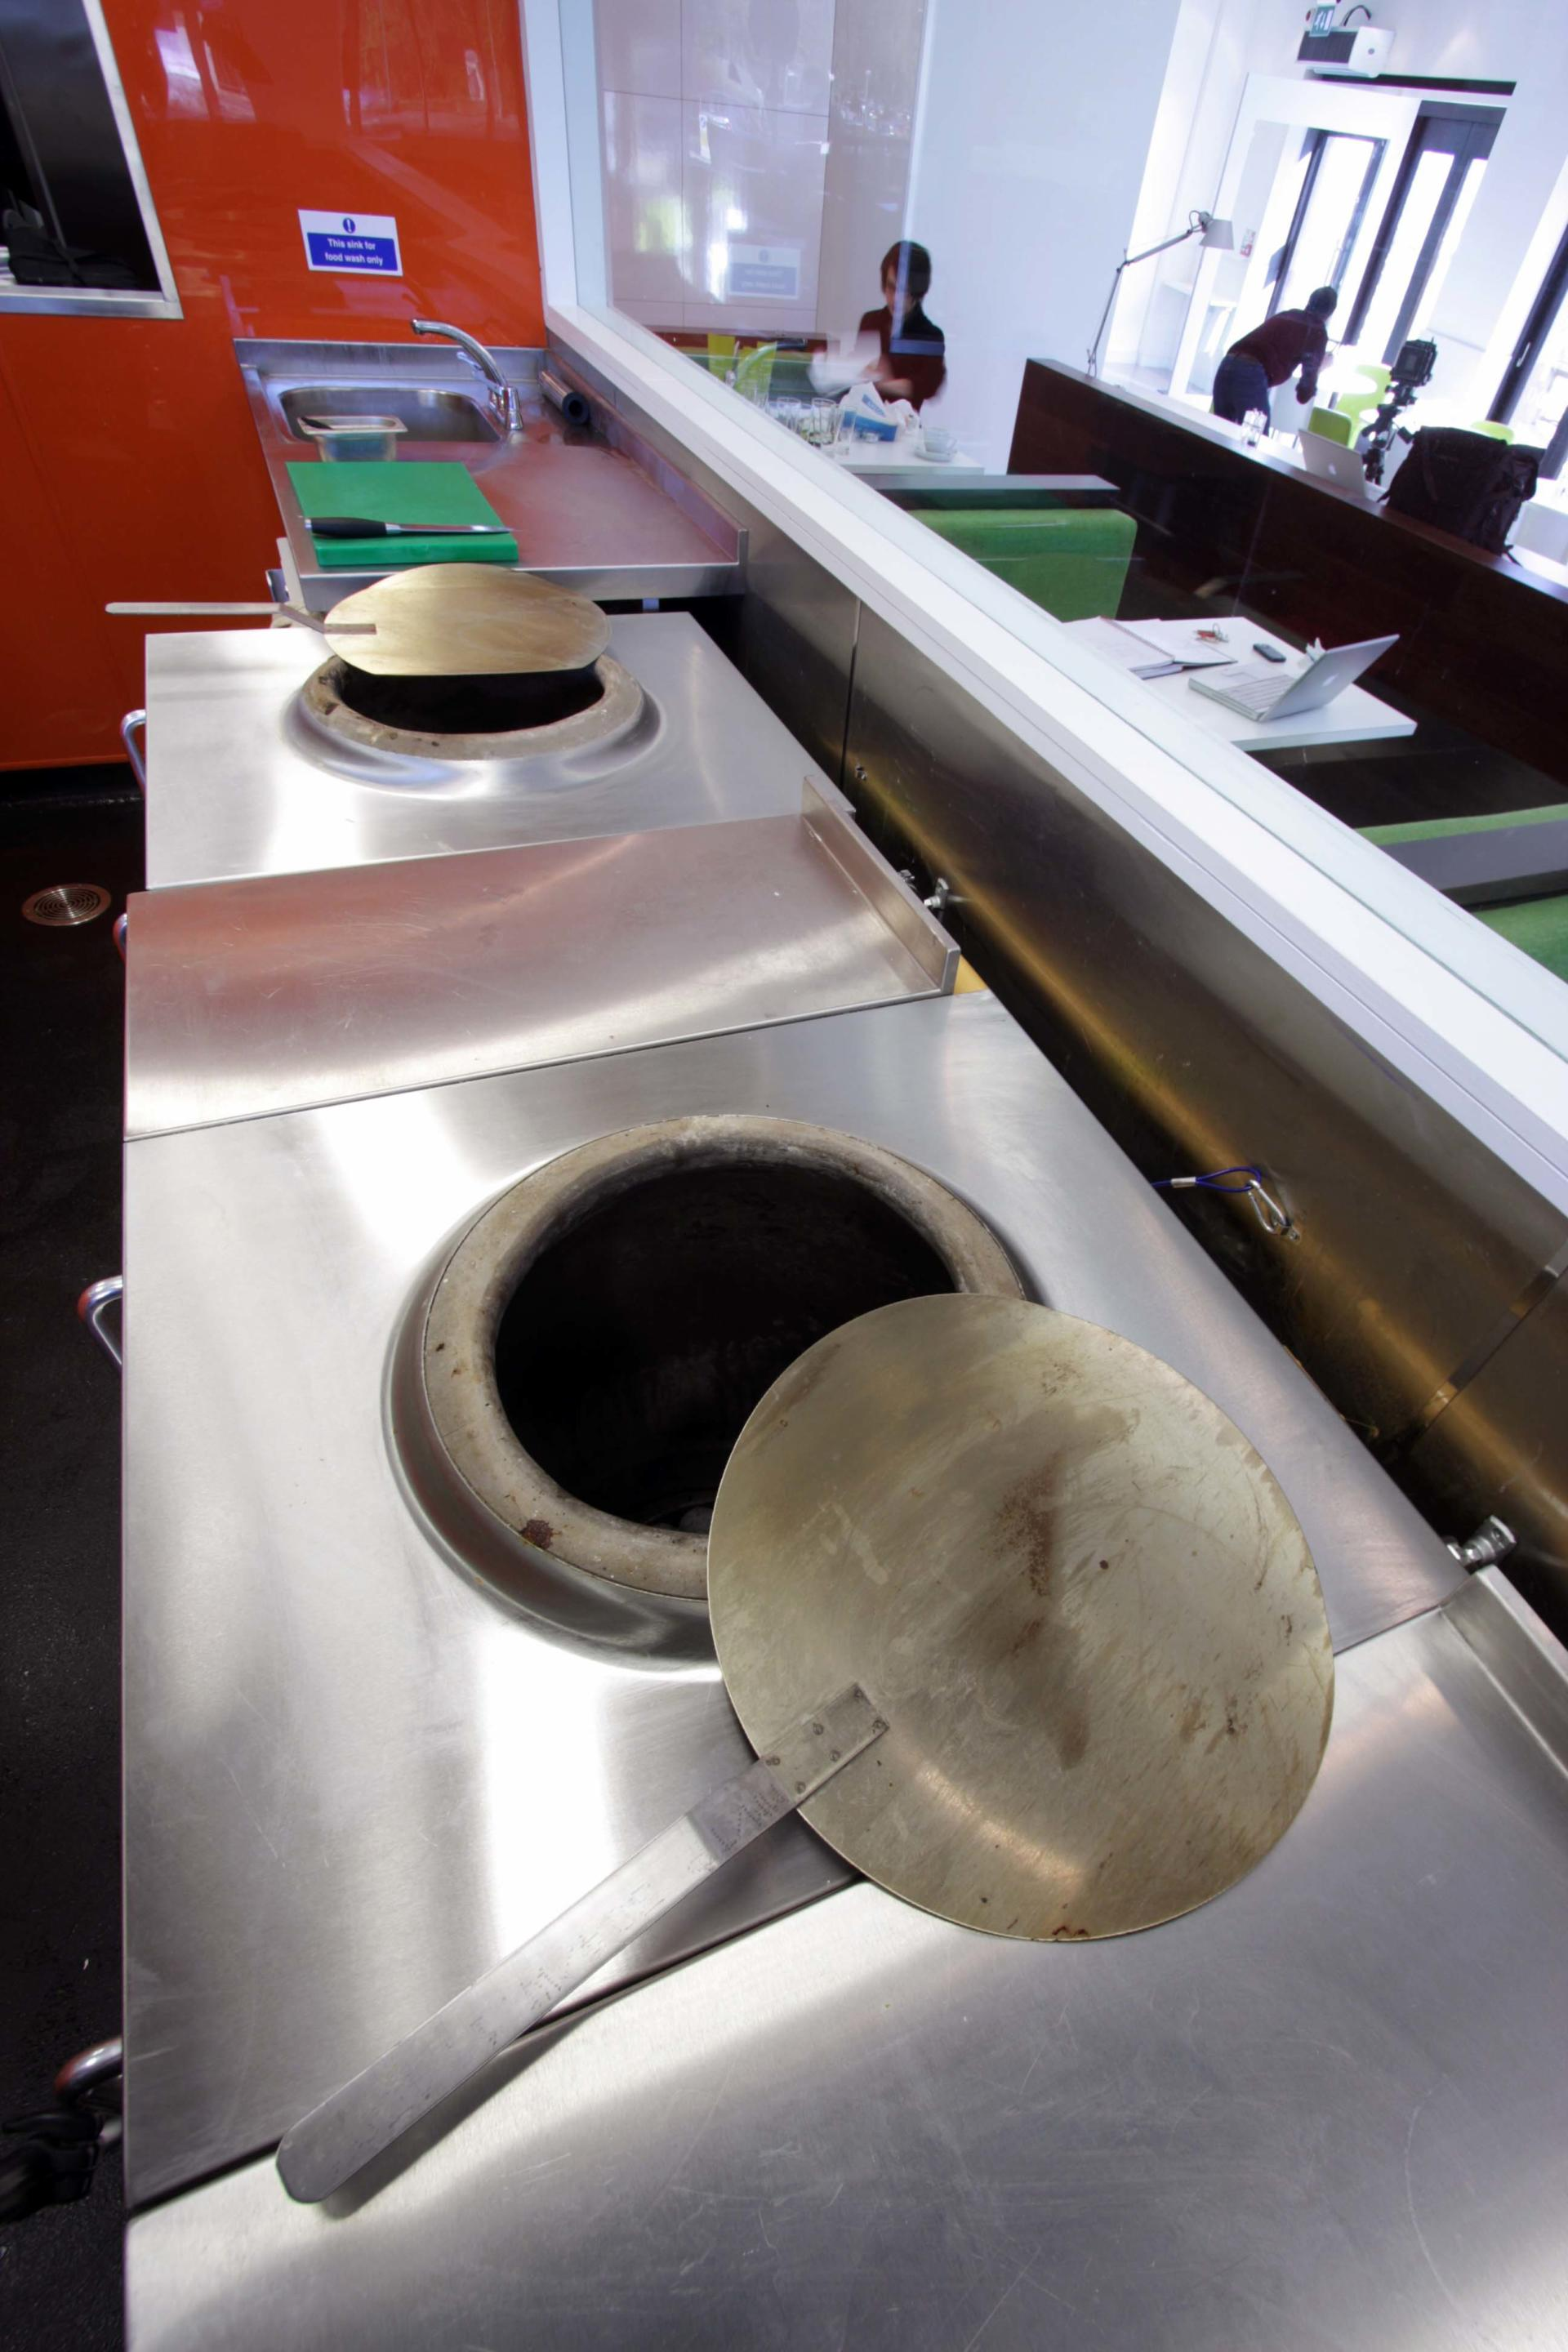 Oojam-Hemel-Hempstead-Indian-restaurant-and-kitchenFabrication-Stainless-Steel-Commercial-Kitchen-spacecatering_2